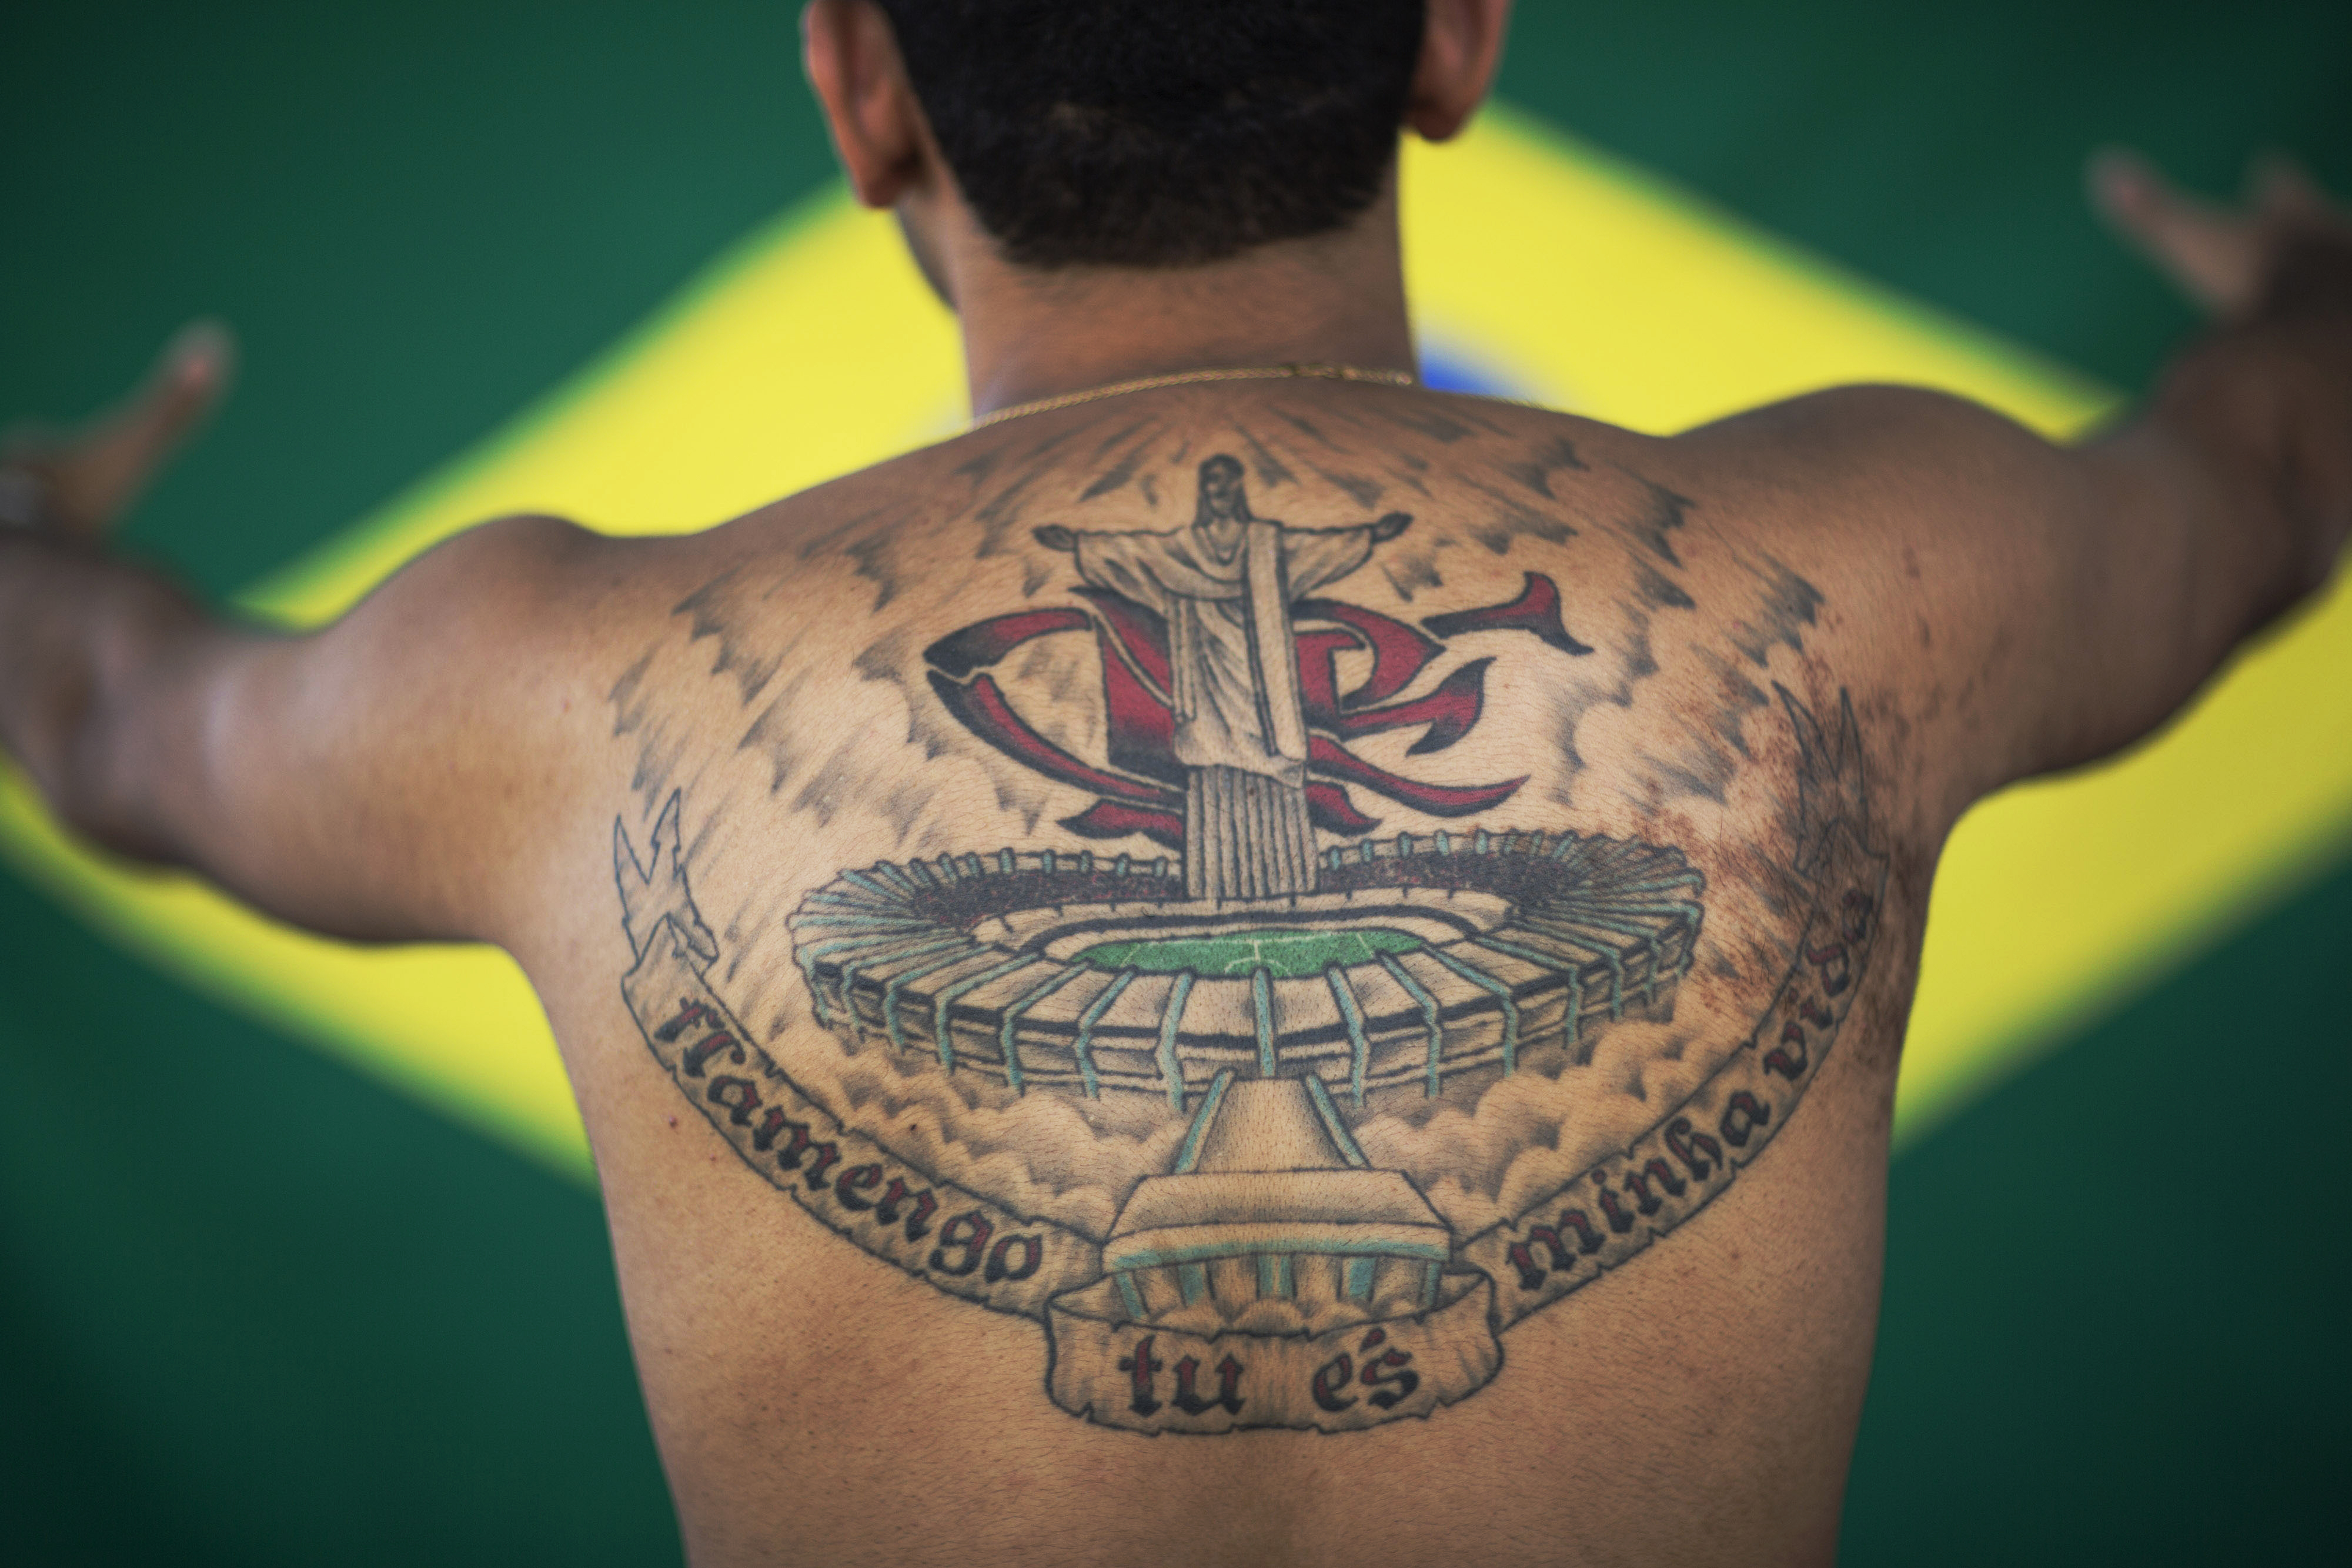 Felipe da Costa Almeida poses for a photo showing his tattoo of the Christ Redeemer statue over the Maracana stadium, backgrounded by the Flamengo soccer club initials in Rio de Janeiro, Brazil on May 30, 2014.